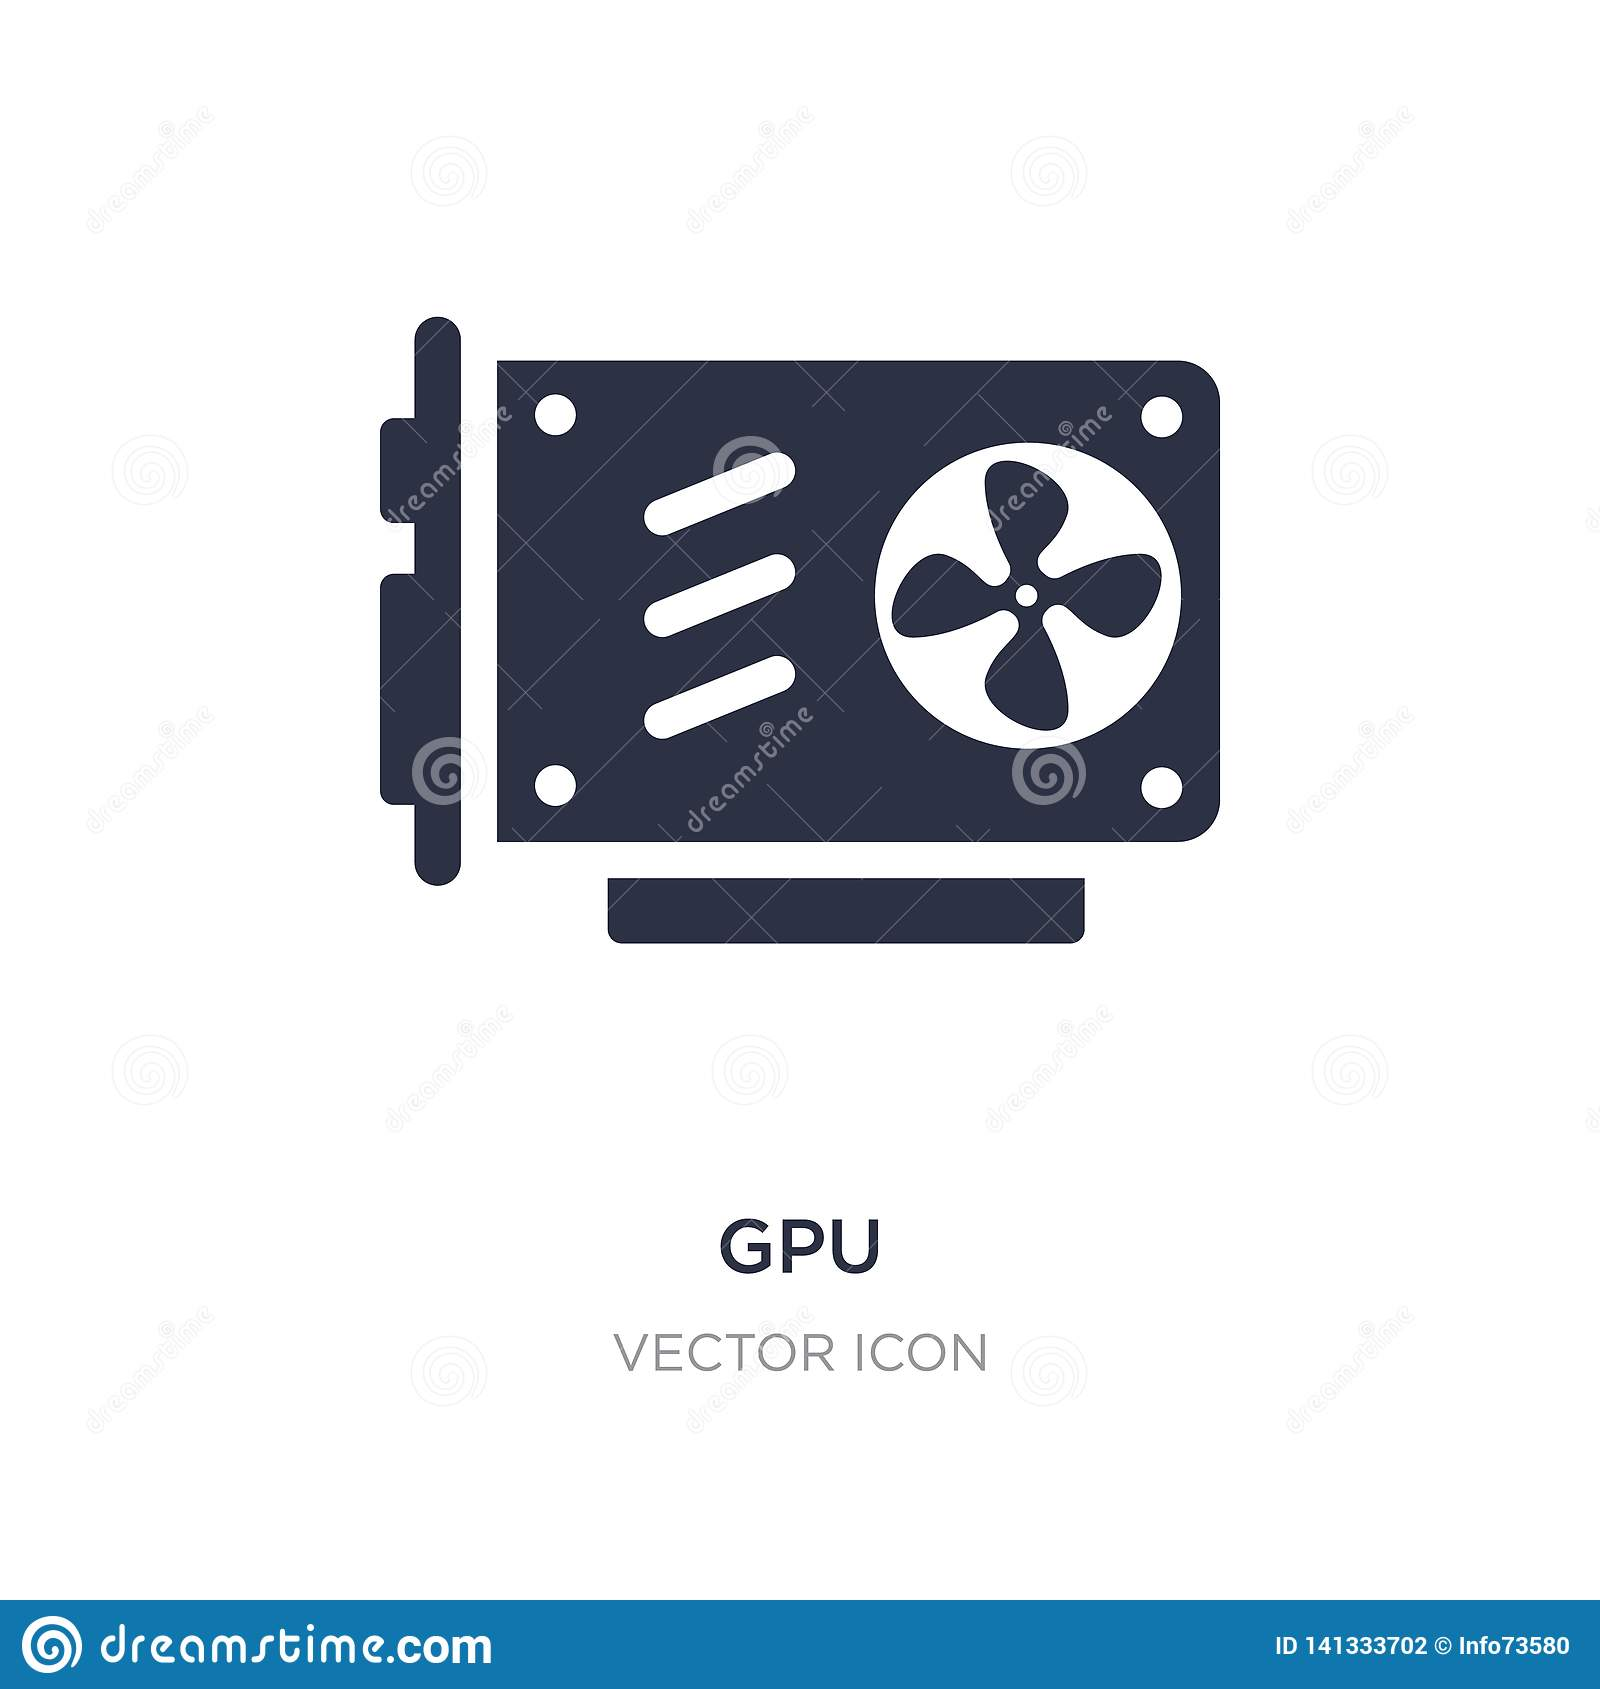 gpu icon on white background. Simple element illustration from Hardware concept